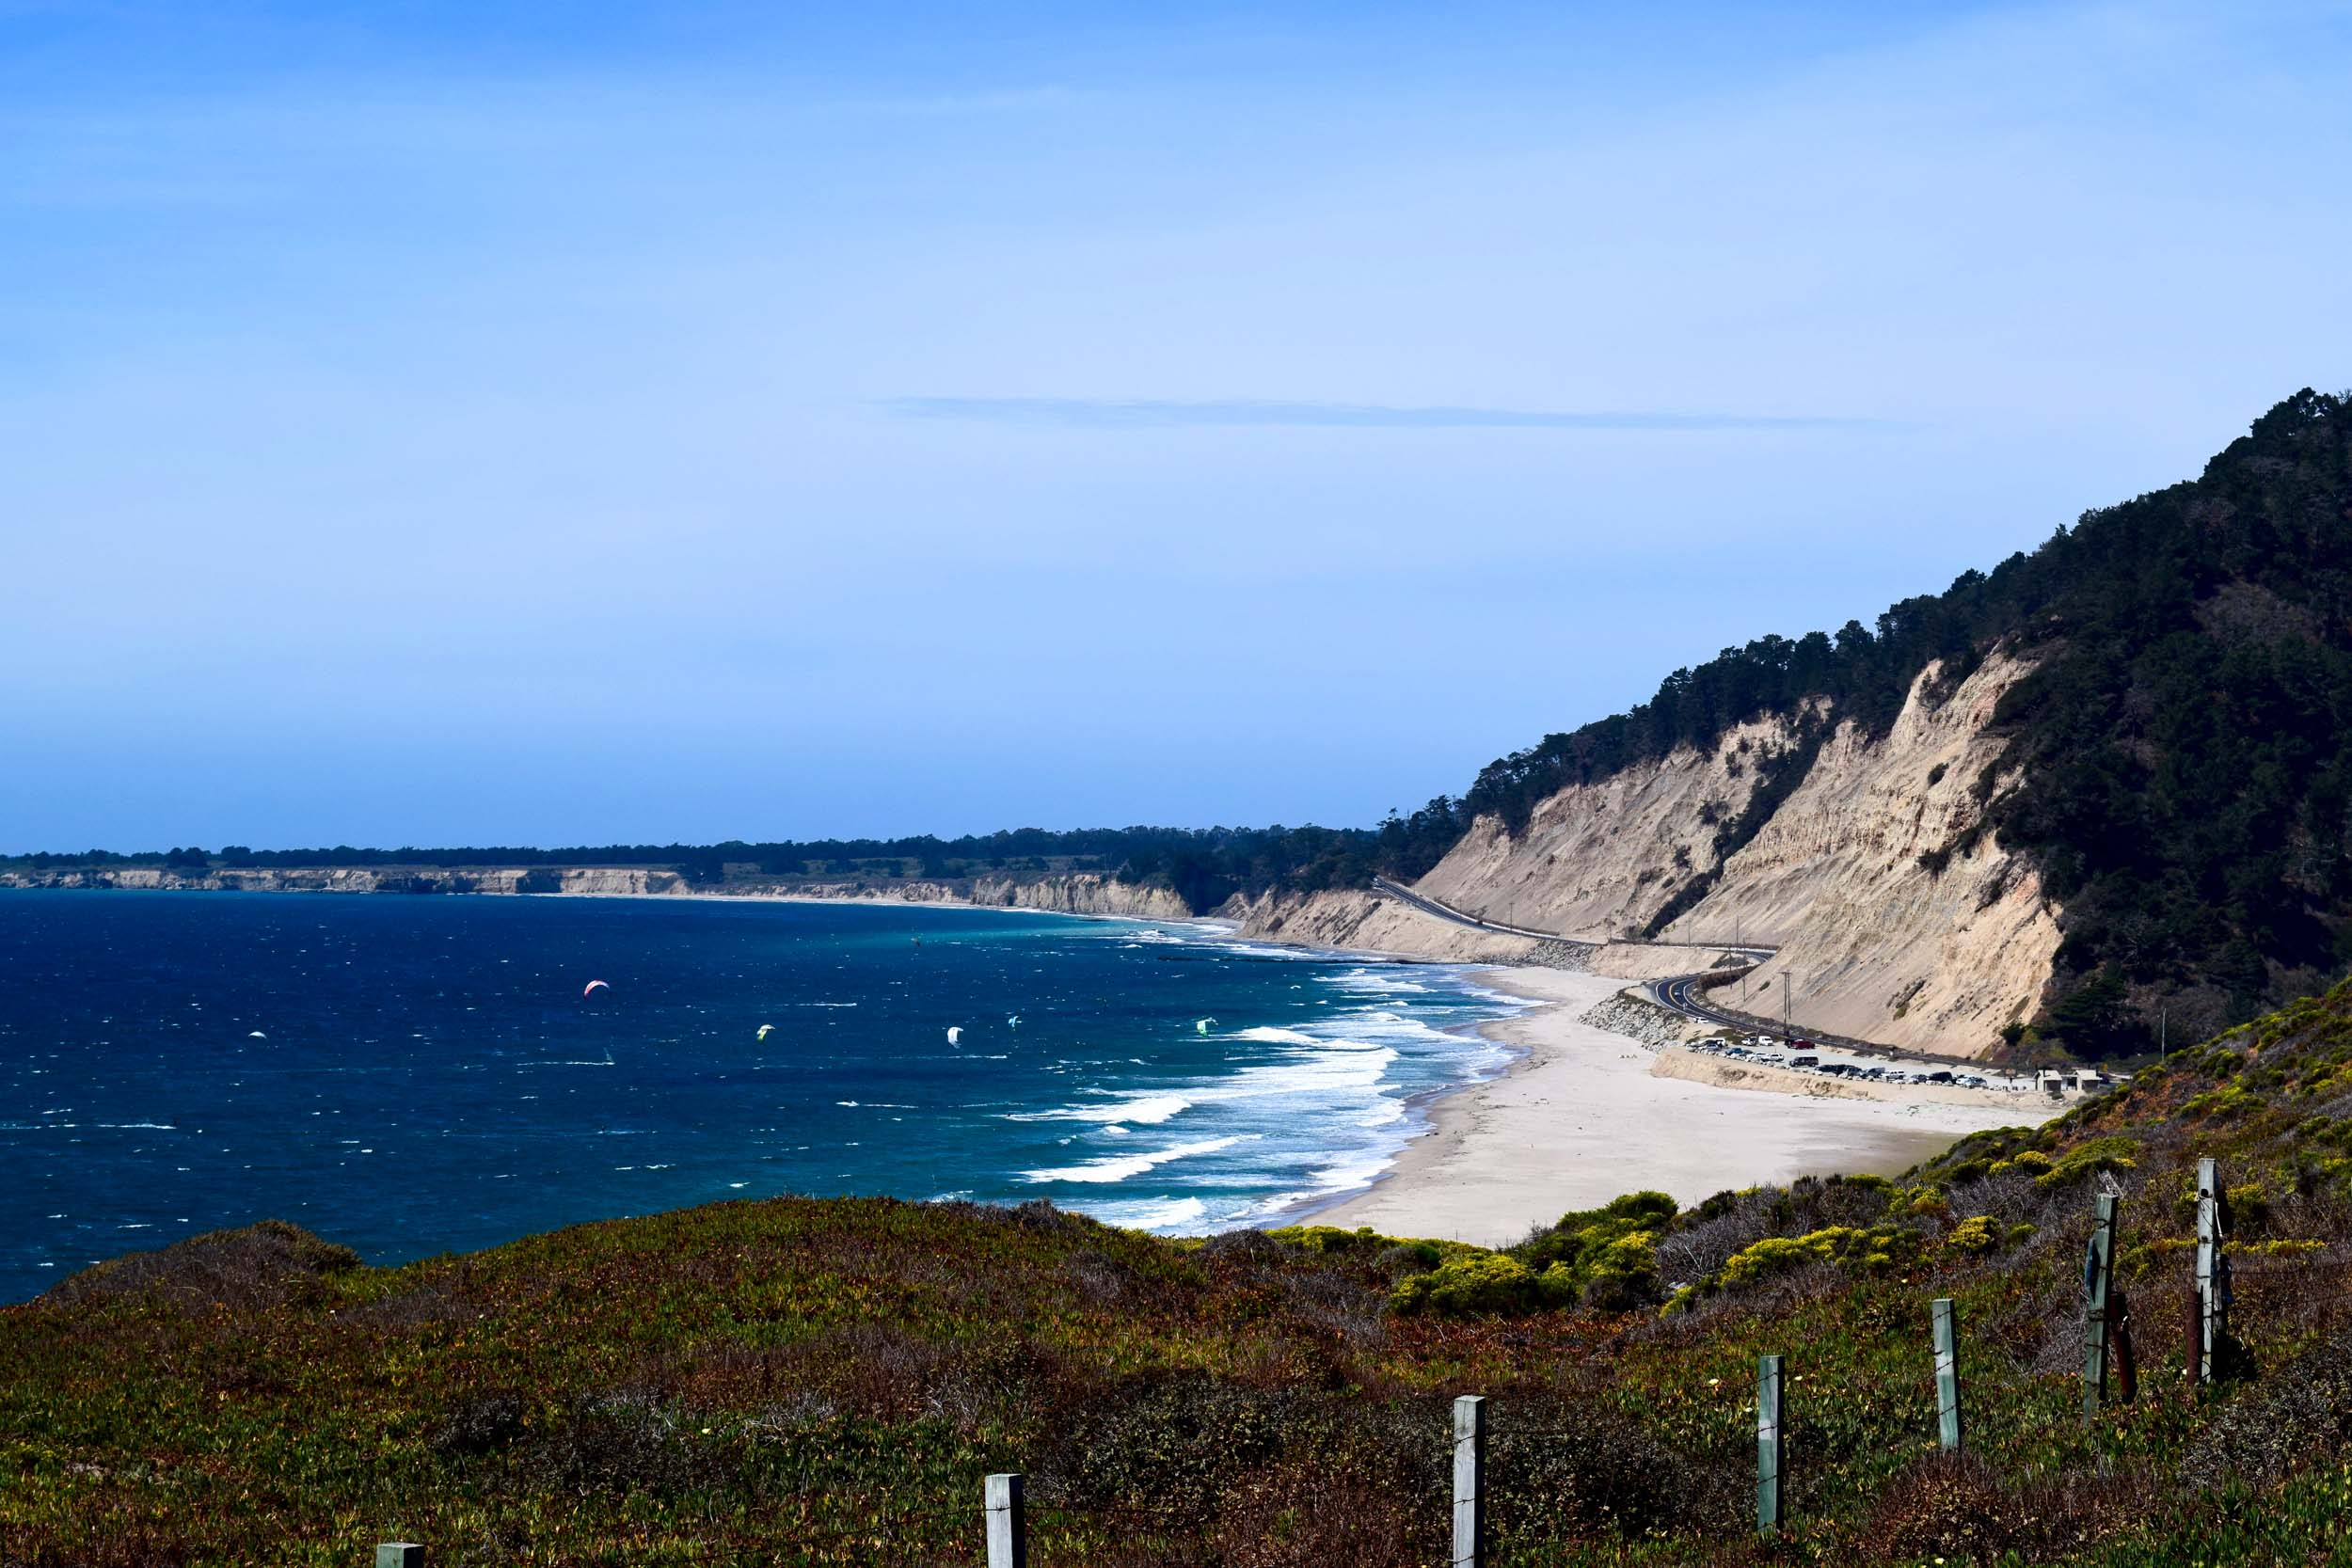 The Pacific Coast Highway, California, USA. A gorgeous coastal highway, with the beach and kite surfers just metres from the road.